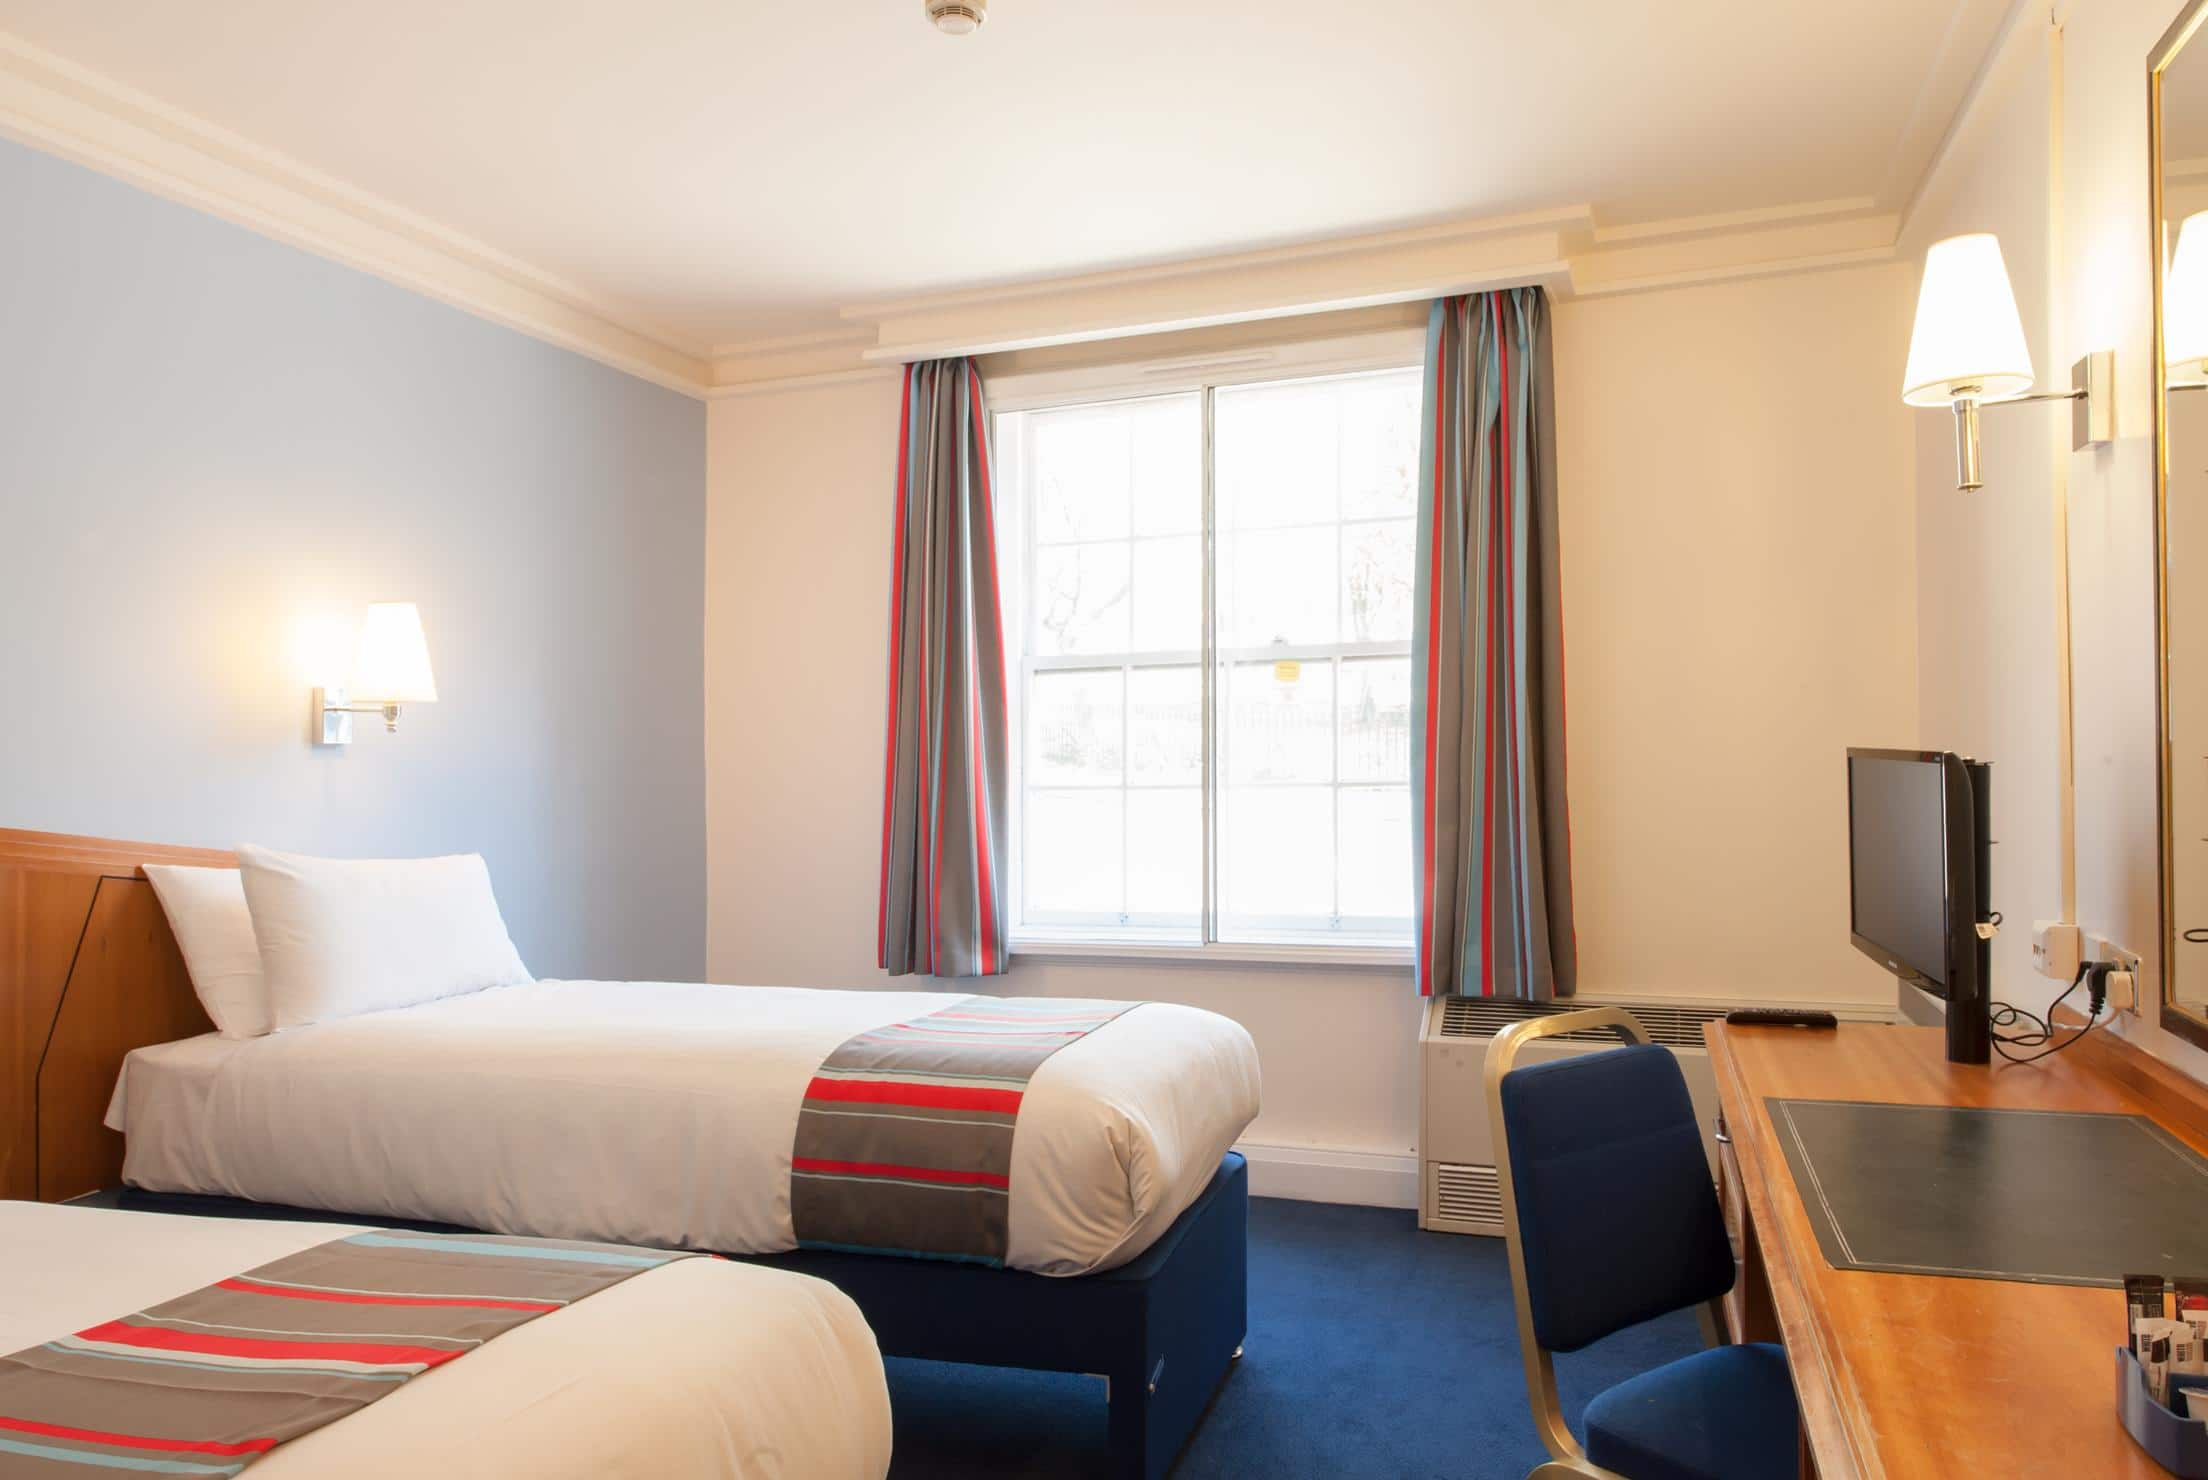 Hotel london cheap internet rates for kings cross hotels in london - Twin Room